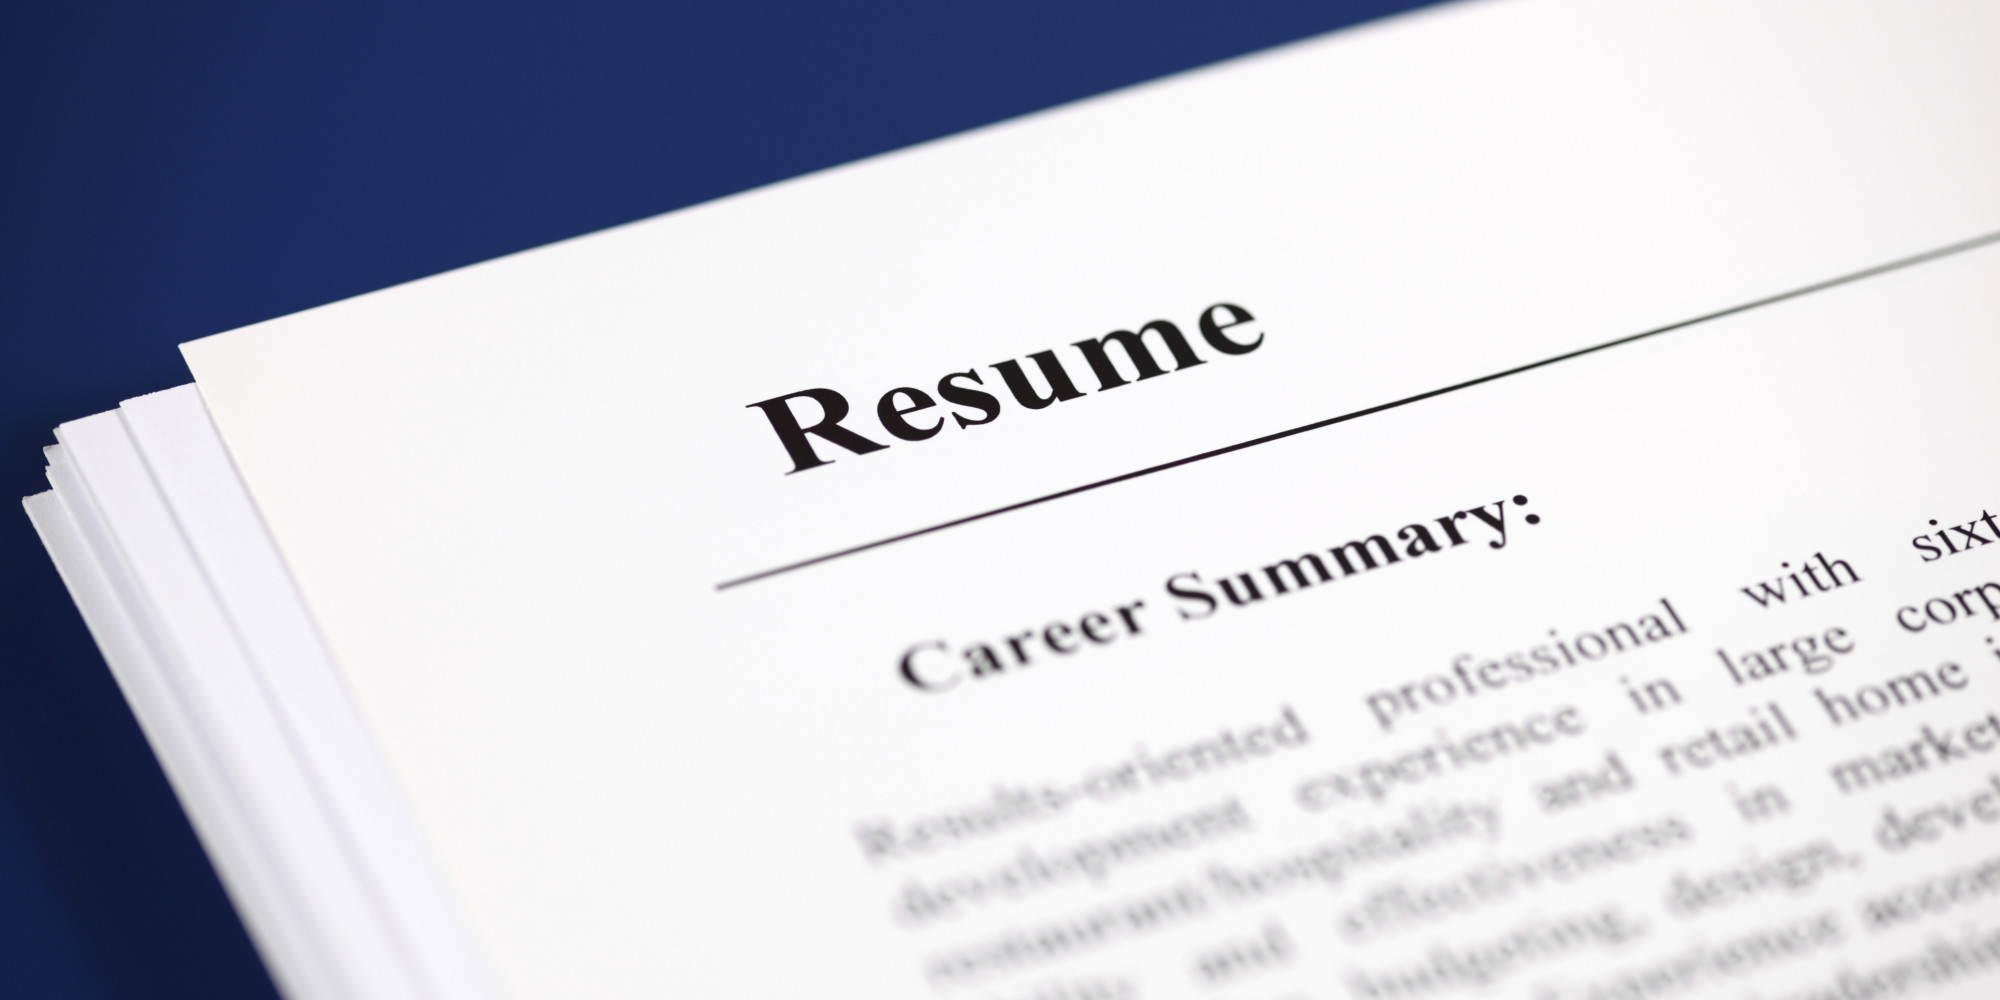 5 resume mistakes that sabotage your job search